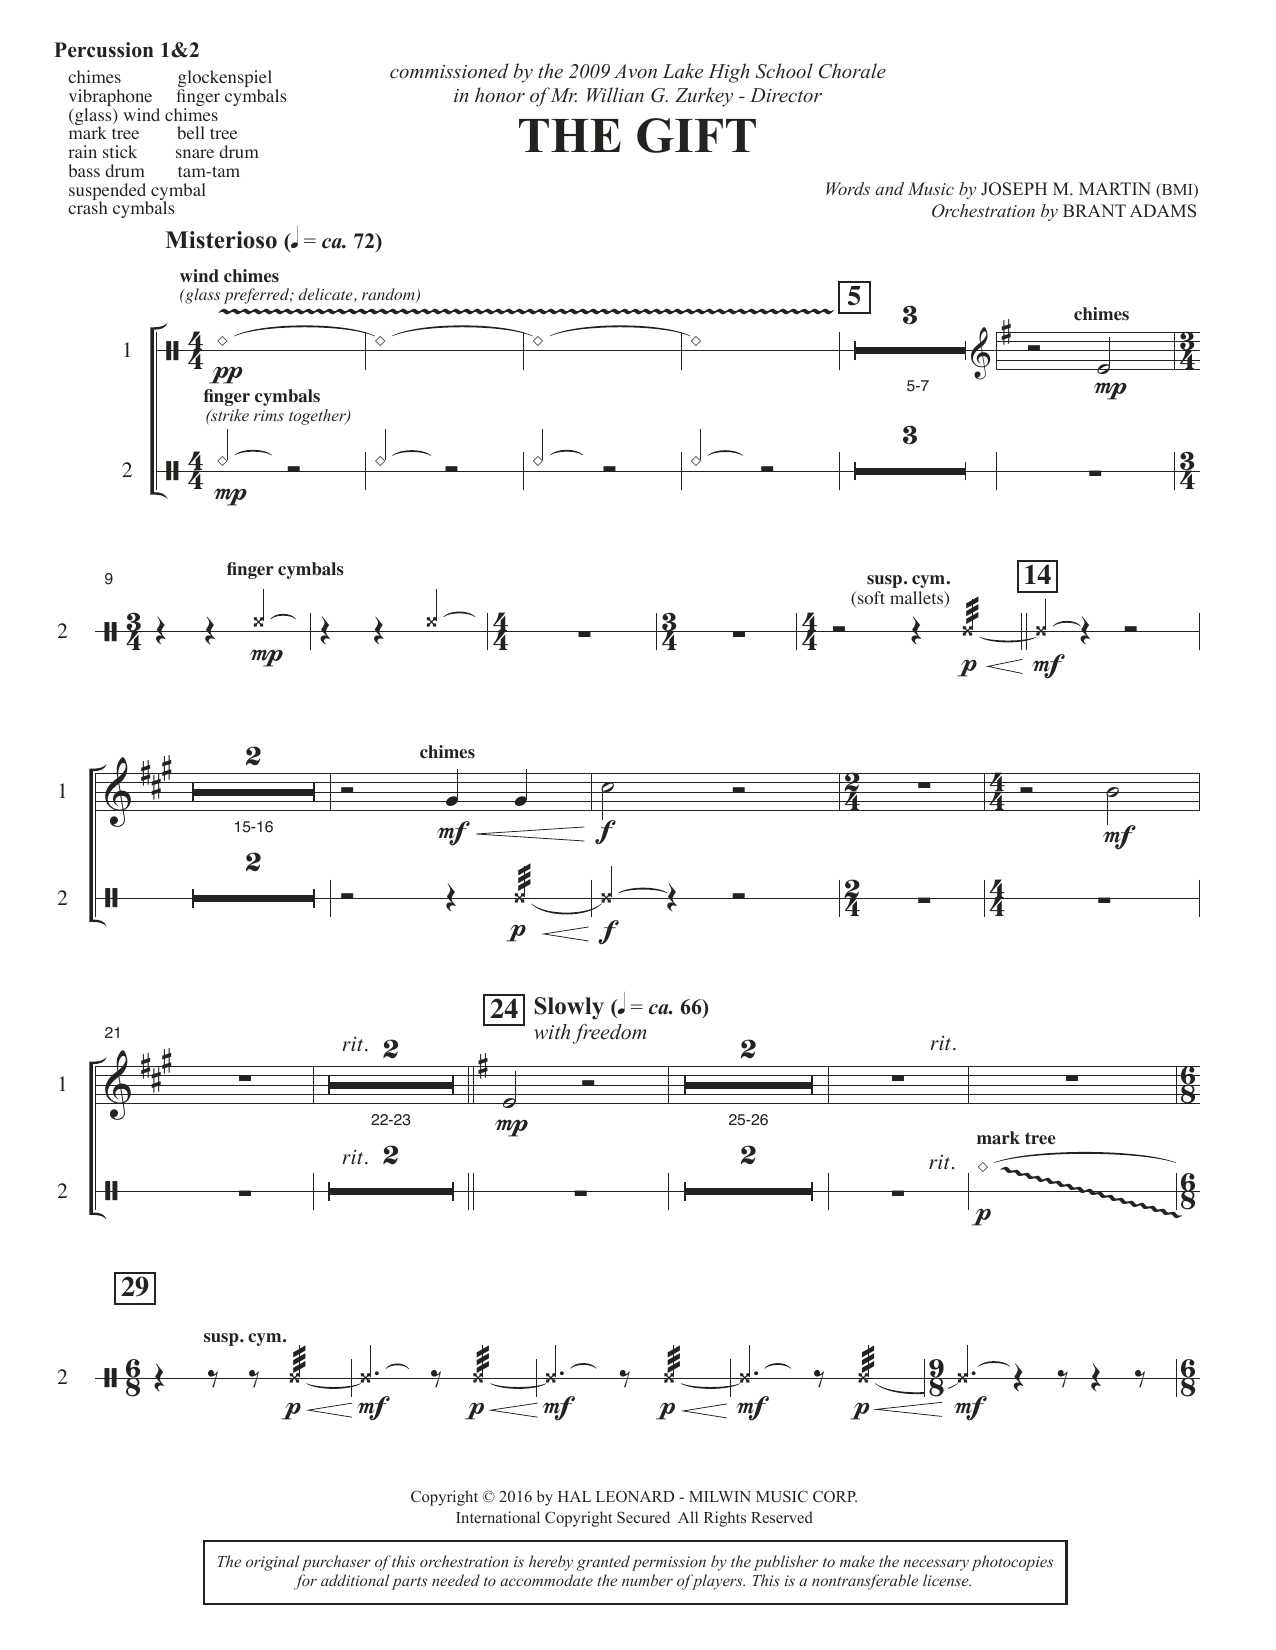 Joseph M. Martin The Gift - Percussion 1 & 2 sheet music notes and chords. Download Printable PDF.